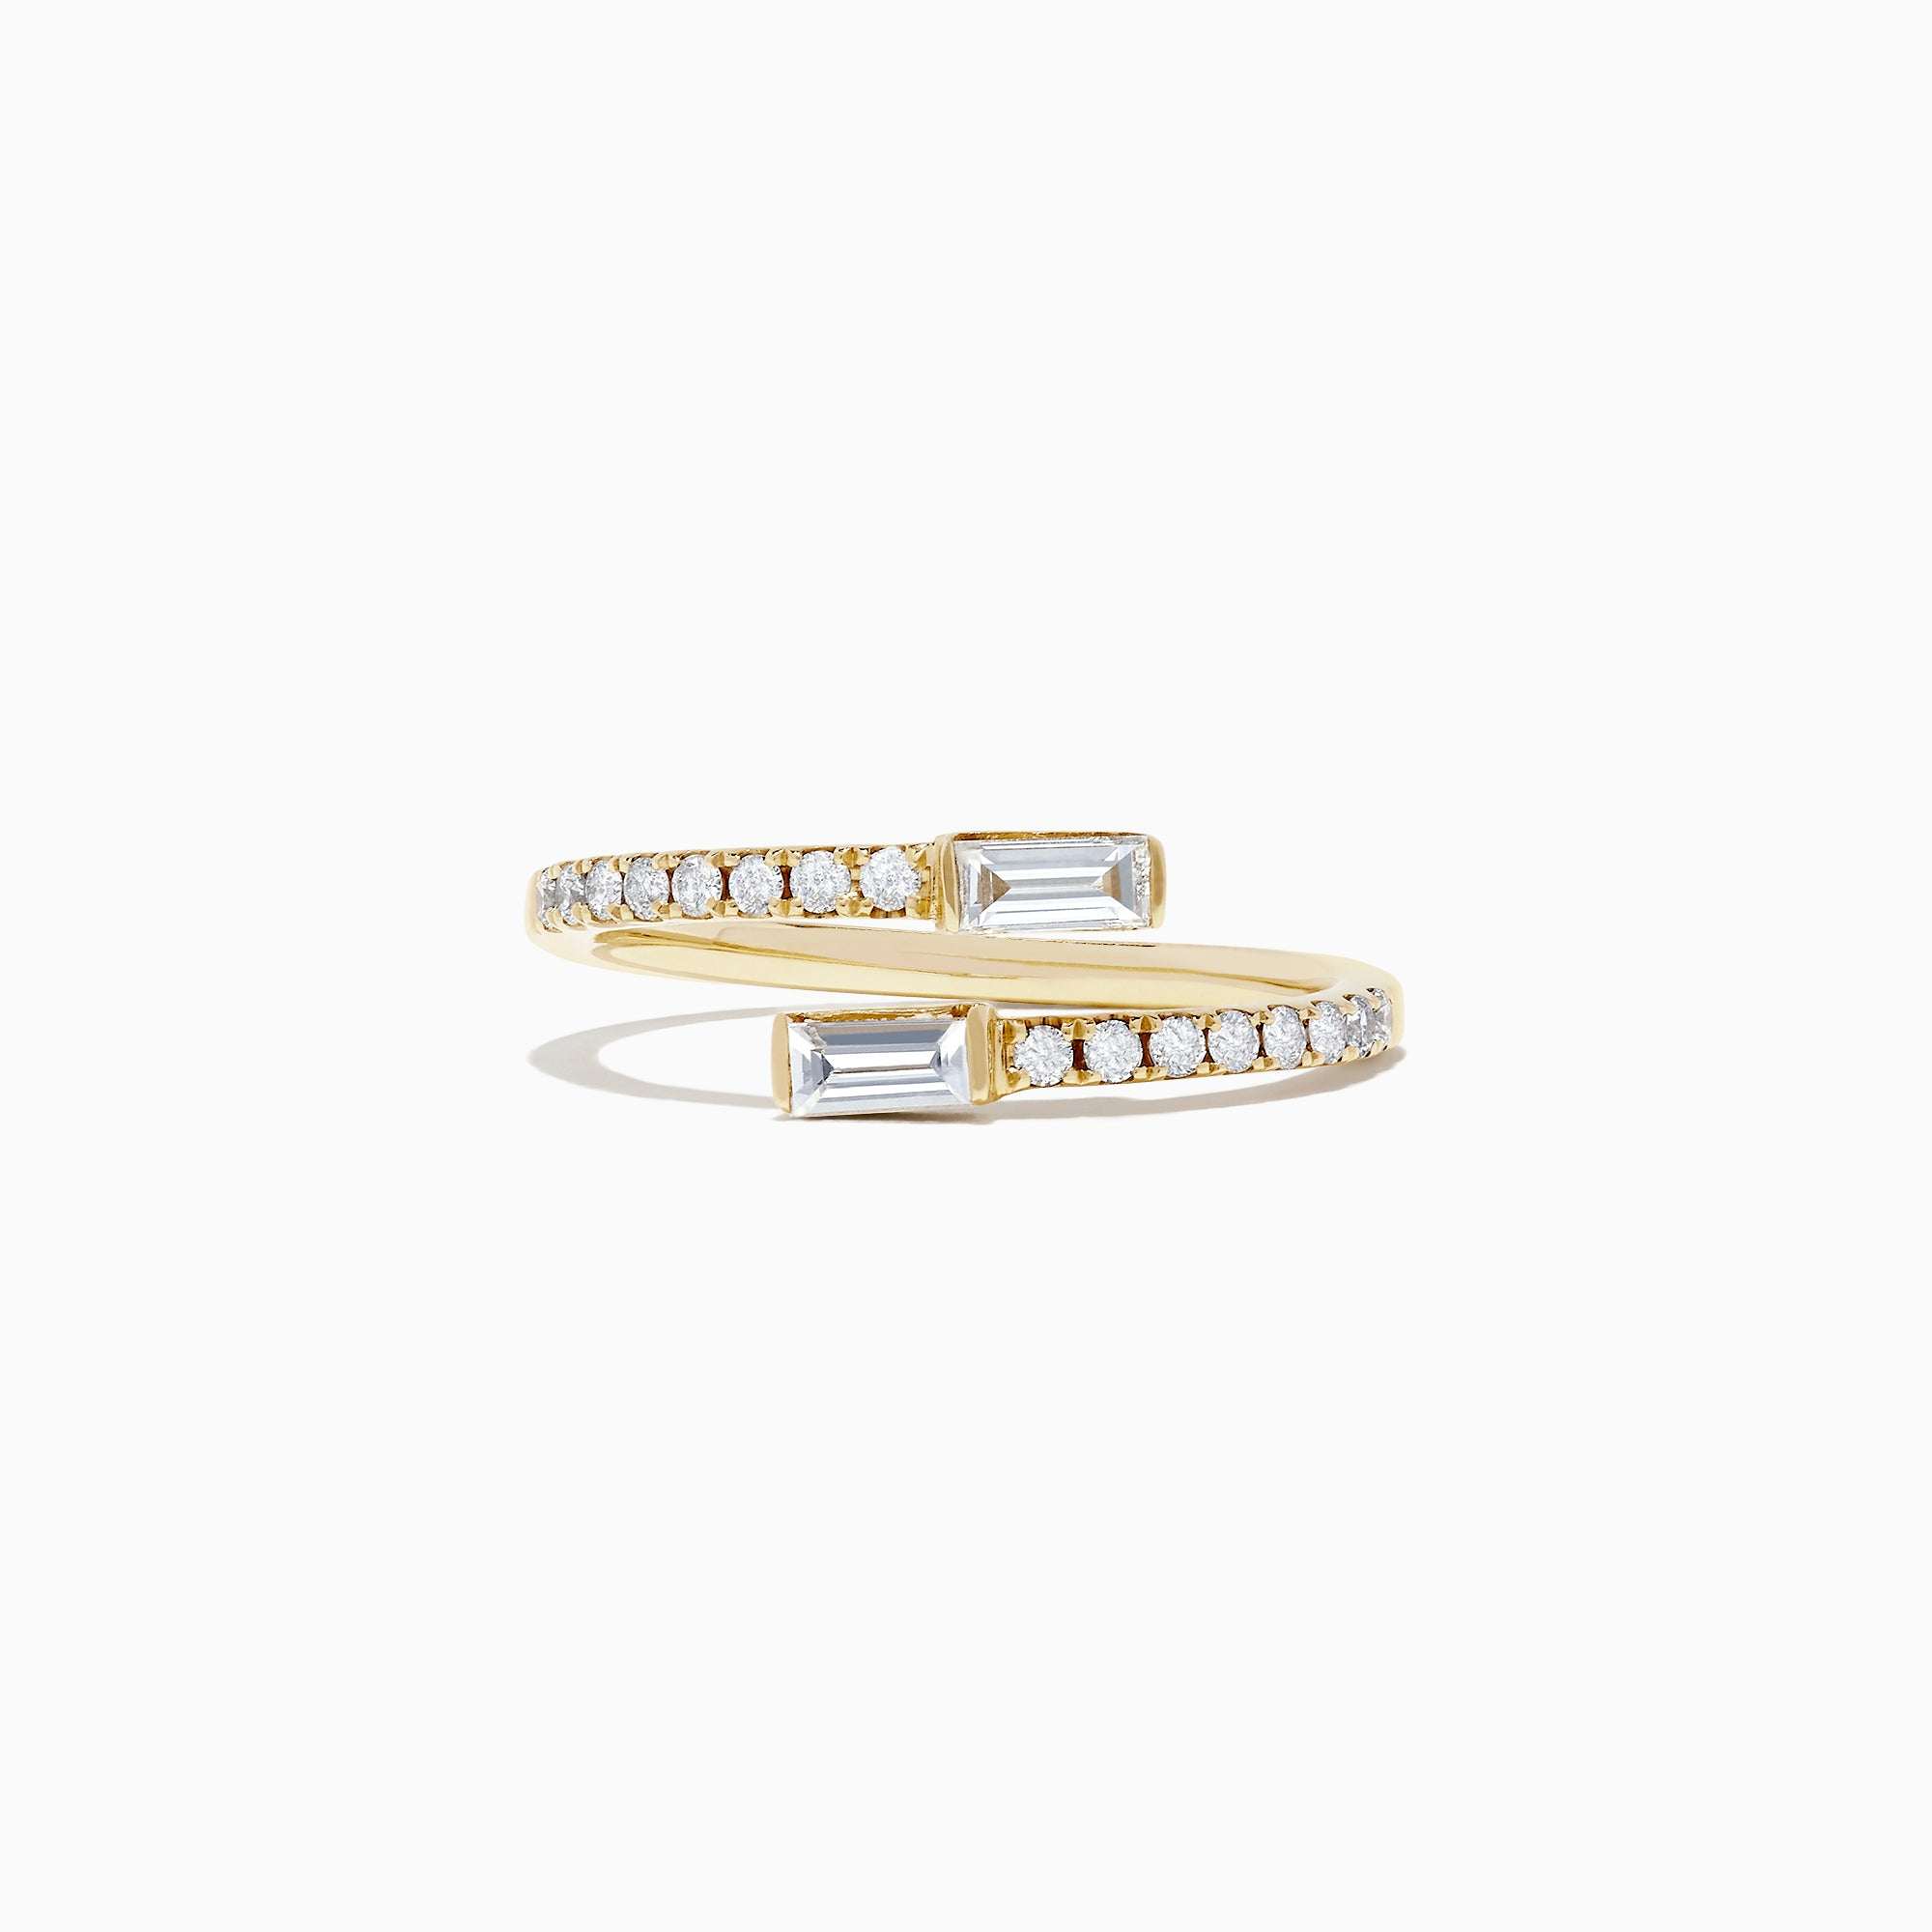 Effy D'Oro 14K Yellow Gold Diamond Ring, 0.46 TCW